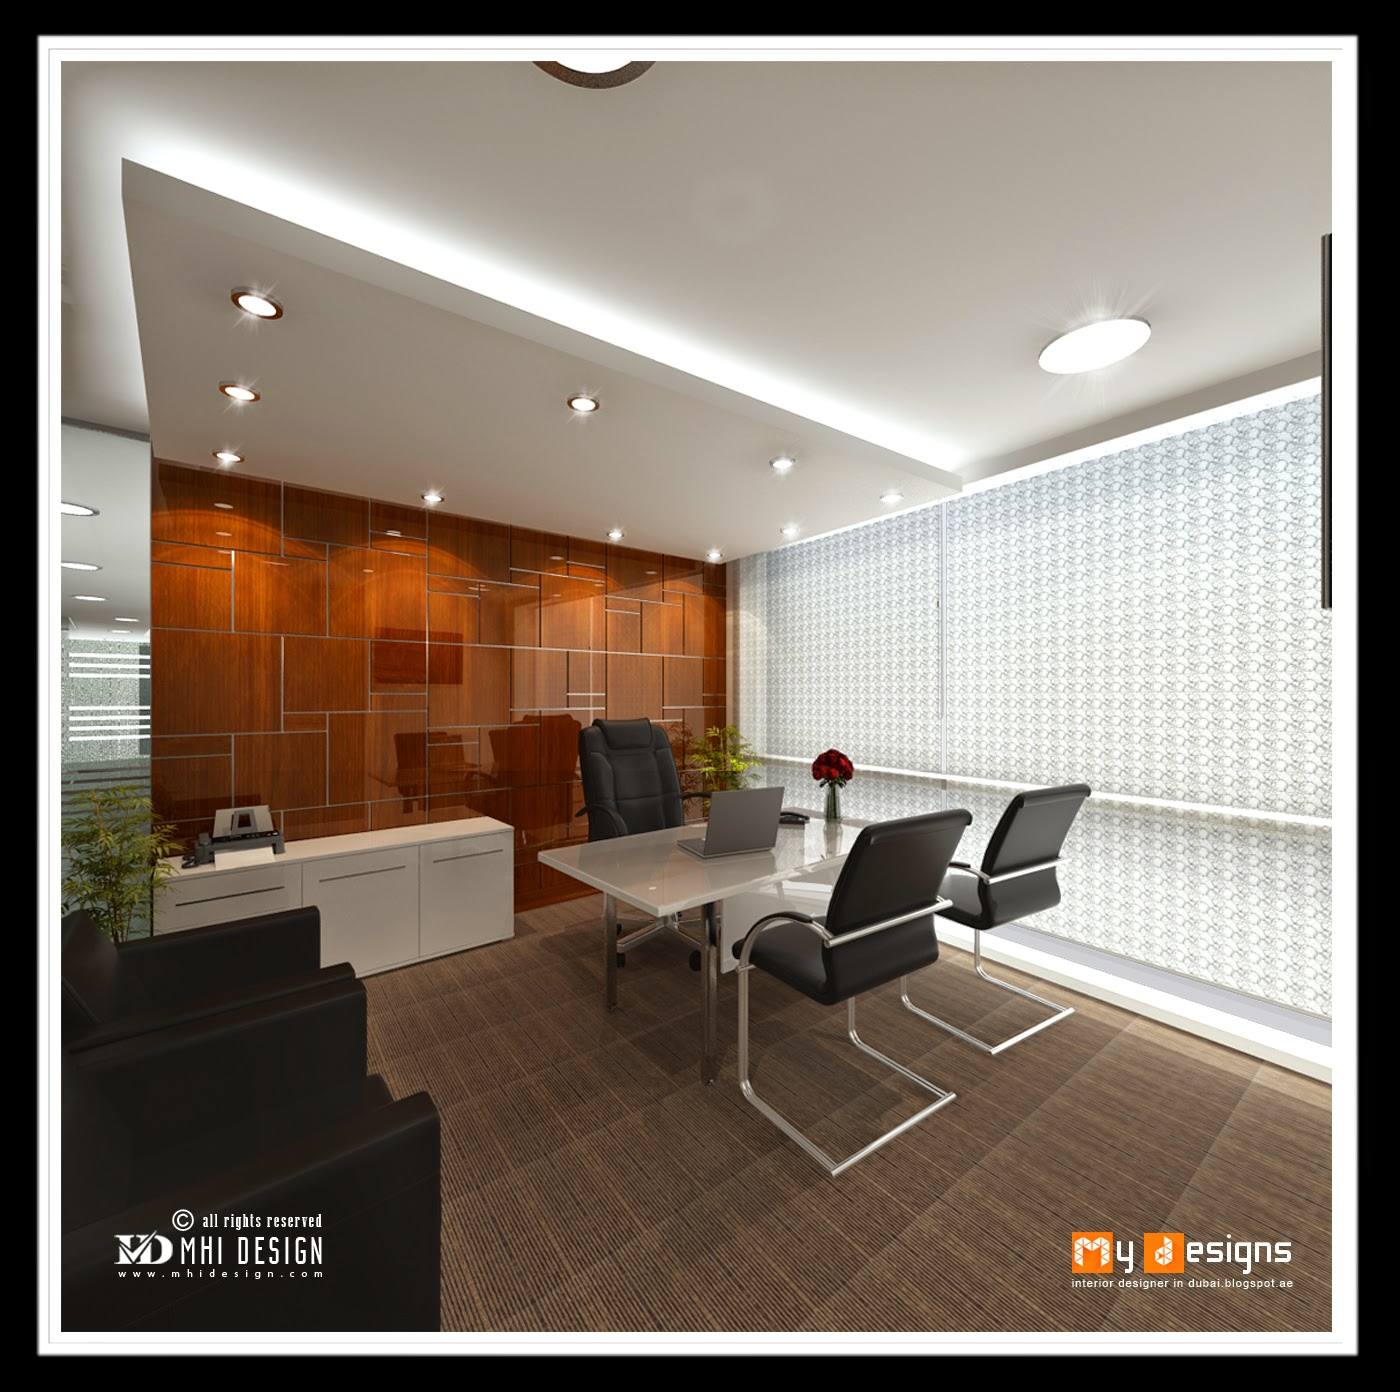 Office interior designs in dubai interior designer in Top interior design companies in the world